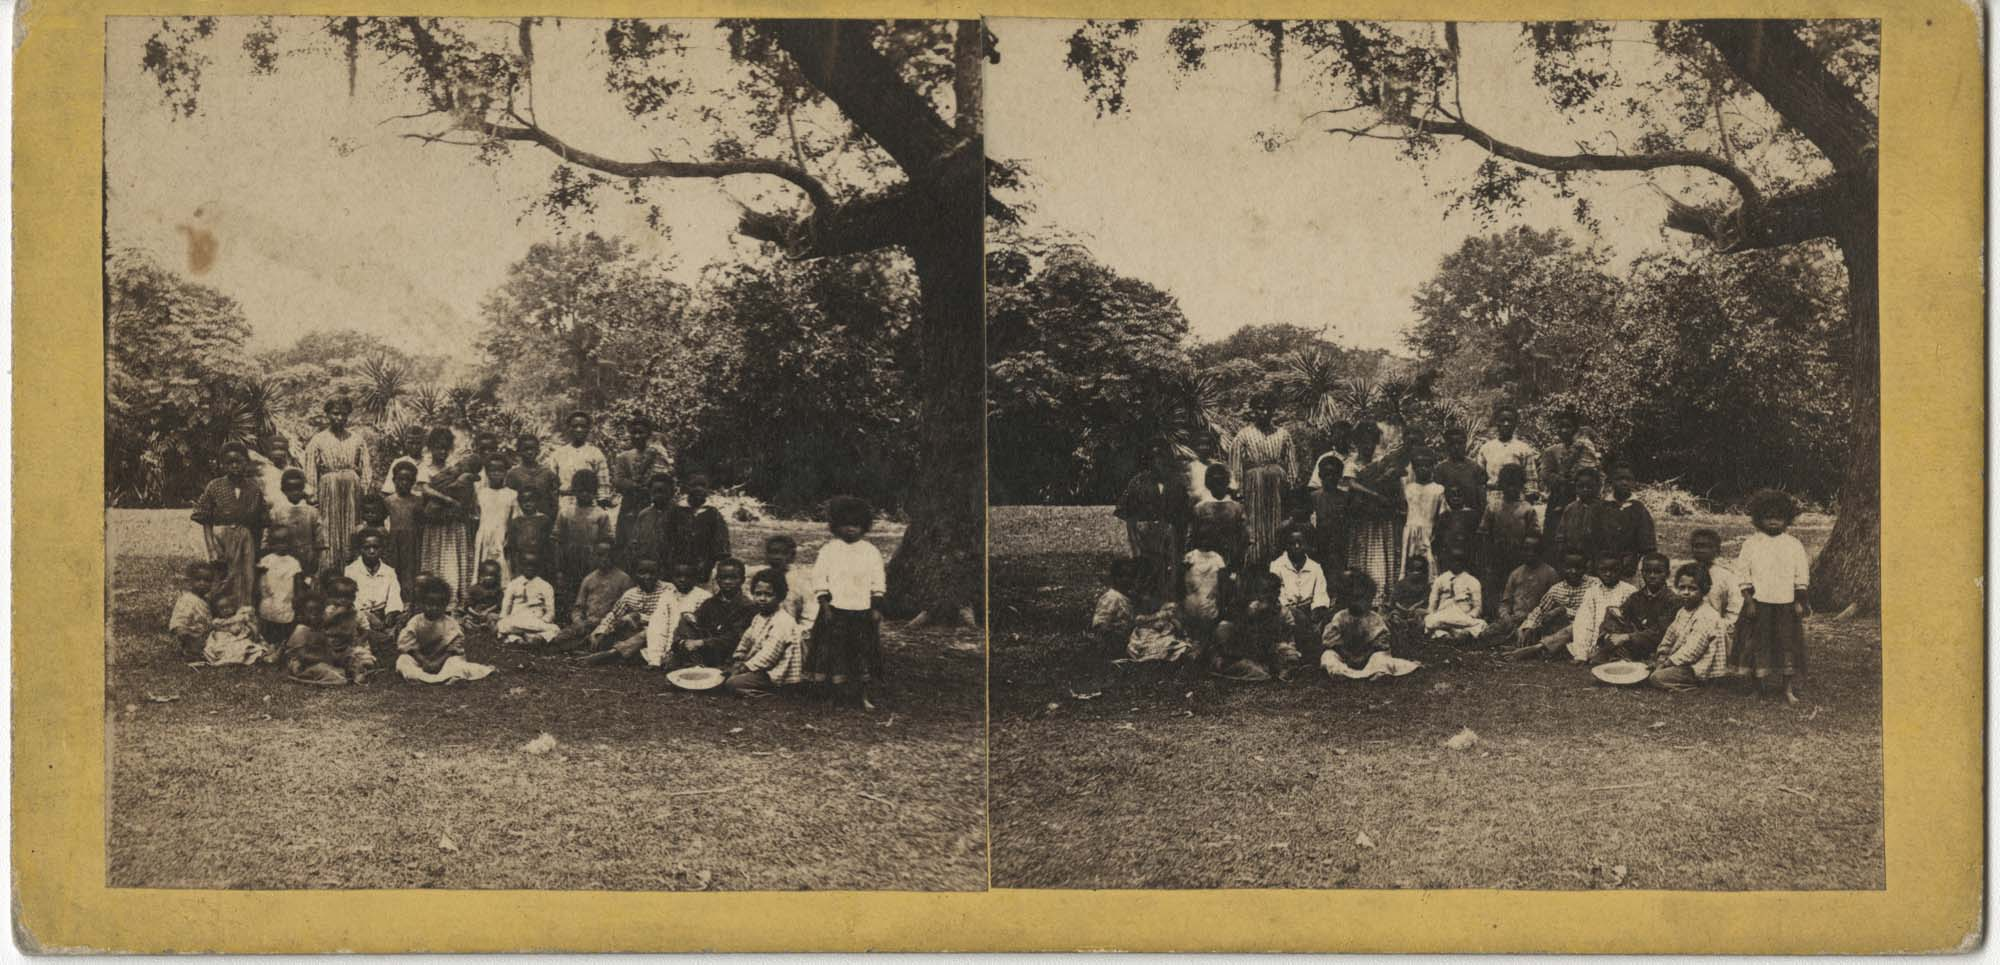 Group African American Children at Old Fort Plantation